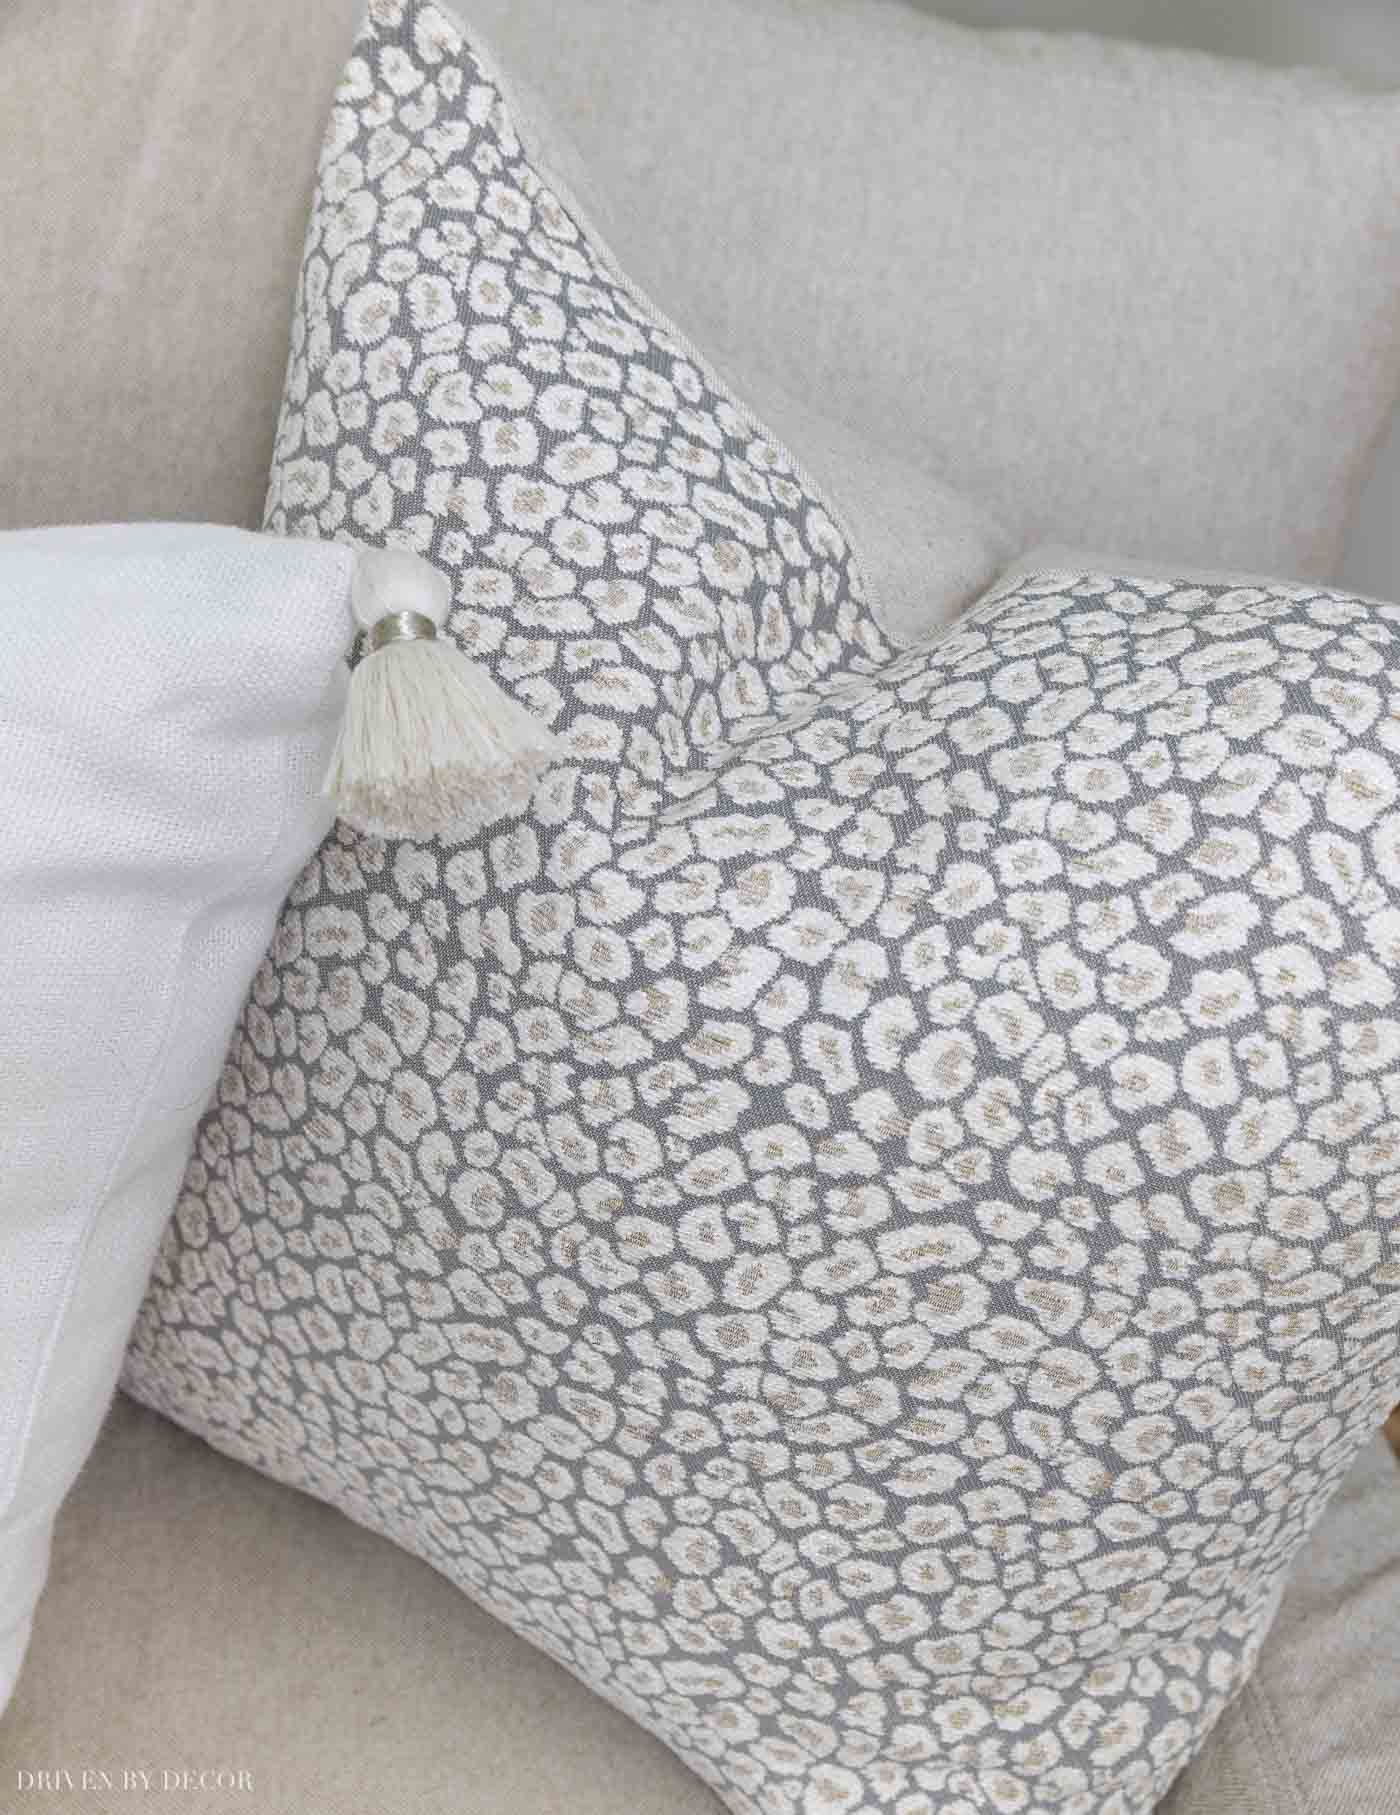 Gorgeous leopard pillow cover for fall decor!